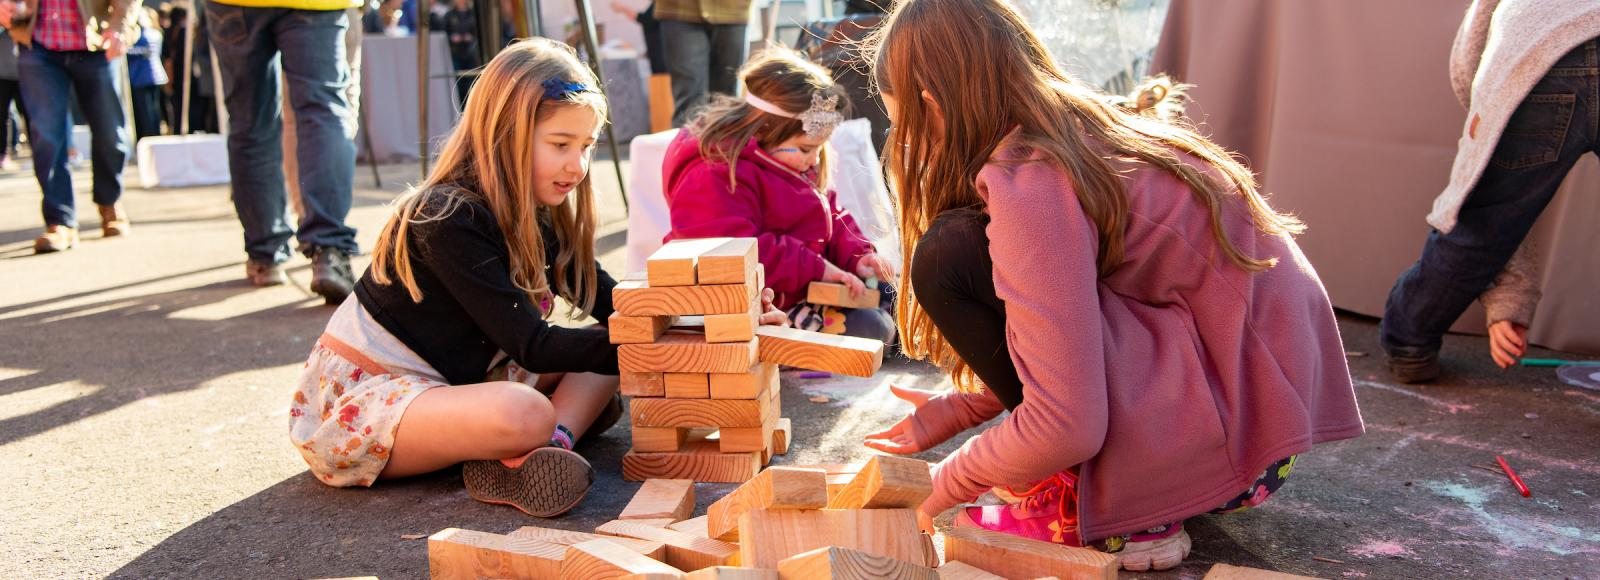 A group of kids plays with a large stacking block game outside on a sunny day.